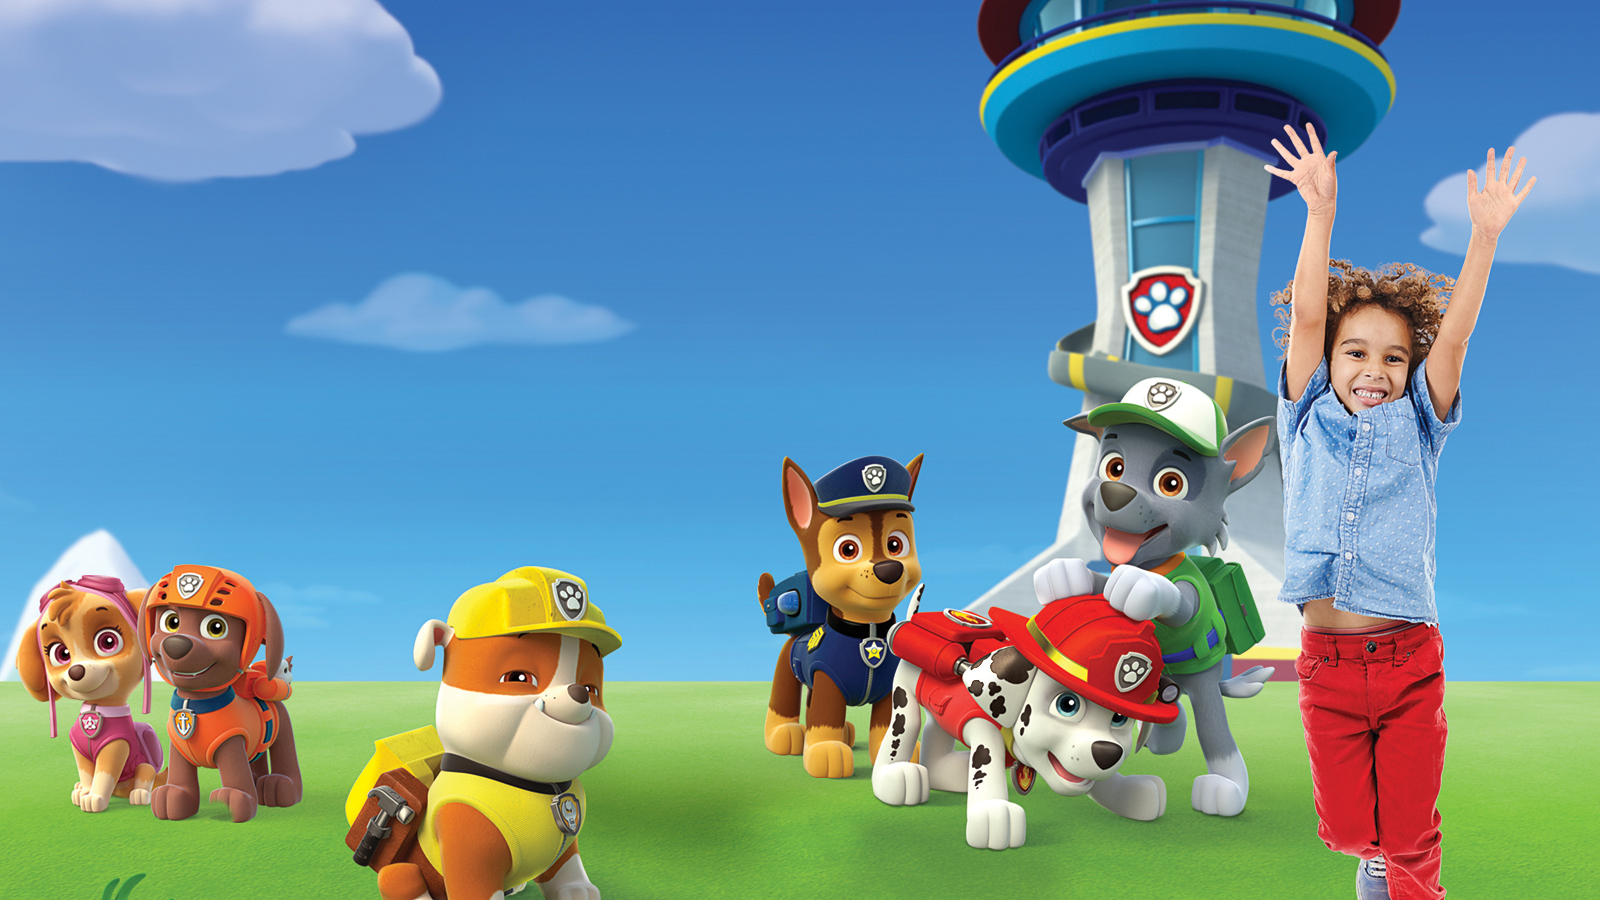 Paw Patrol Wallpaper,  Full HD Widescreen Paw Patrol Backgrounds 1600x900